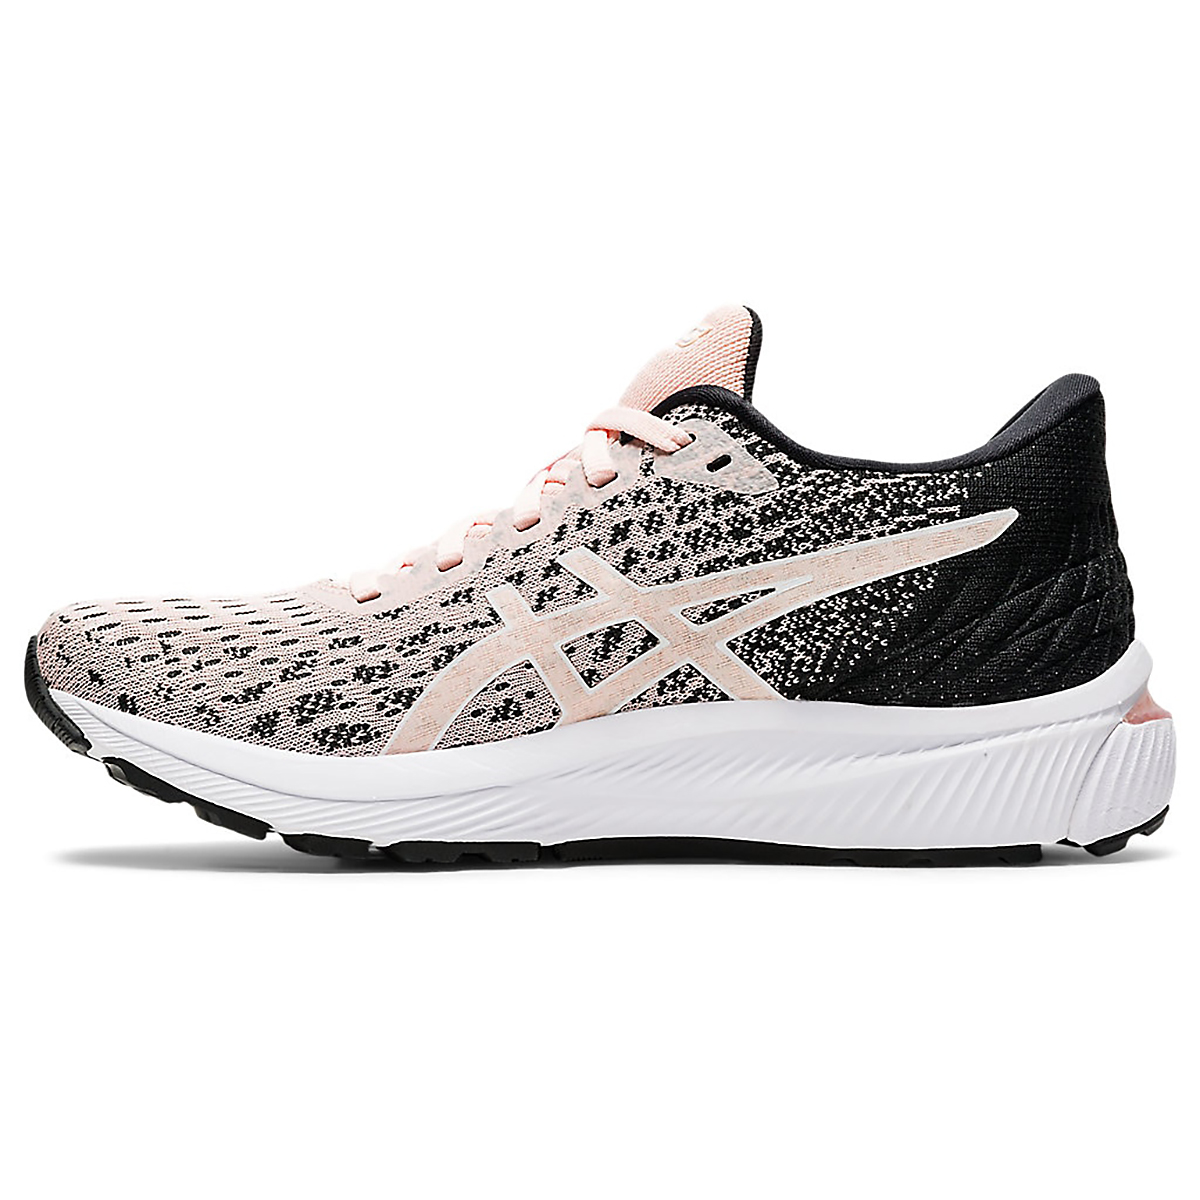 Women's Asics Gel-Cumulus 22 Knit Running Shoe - Color: Breeze/Black - Size: 5 - Width: Regular, Breeze/Black, large, image 2